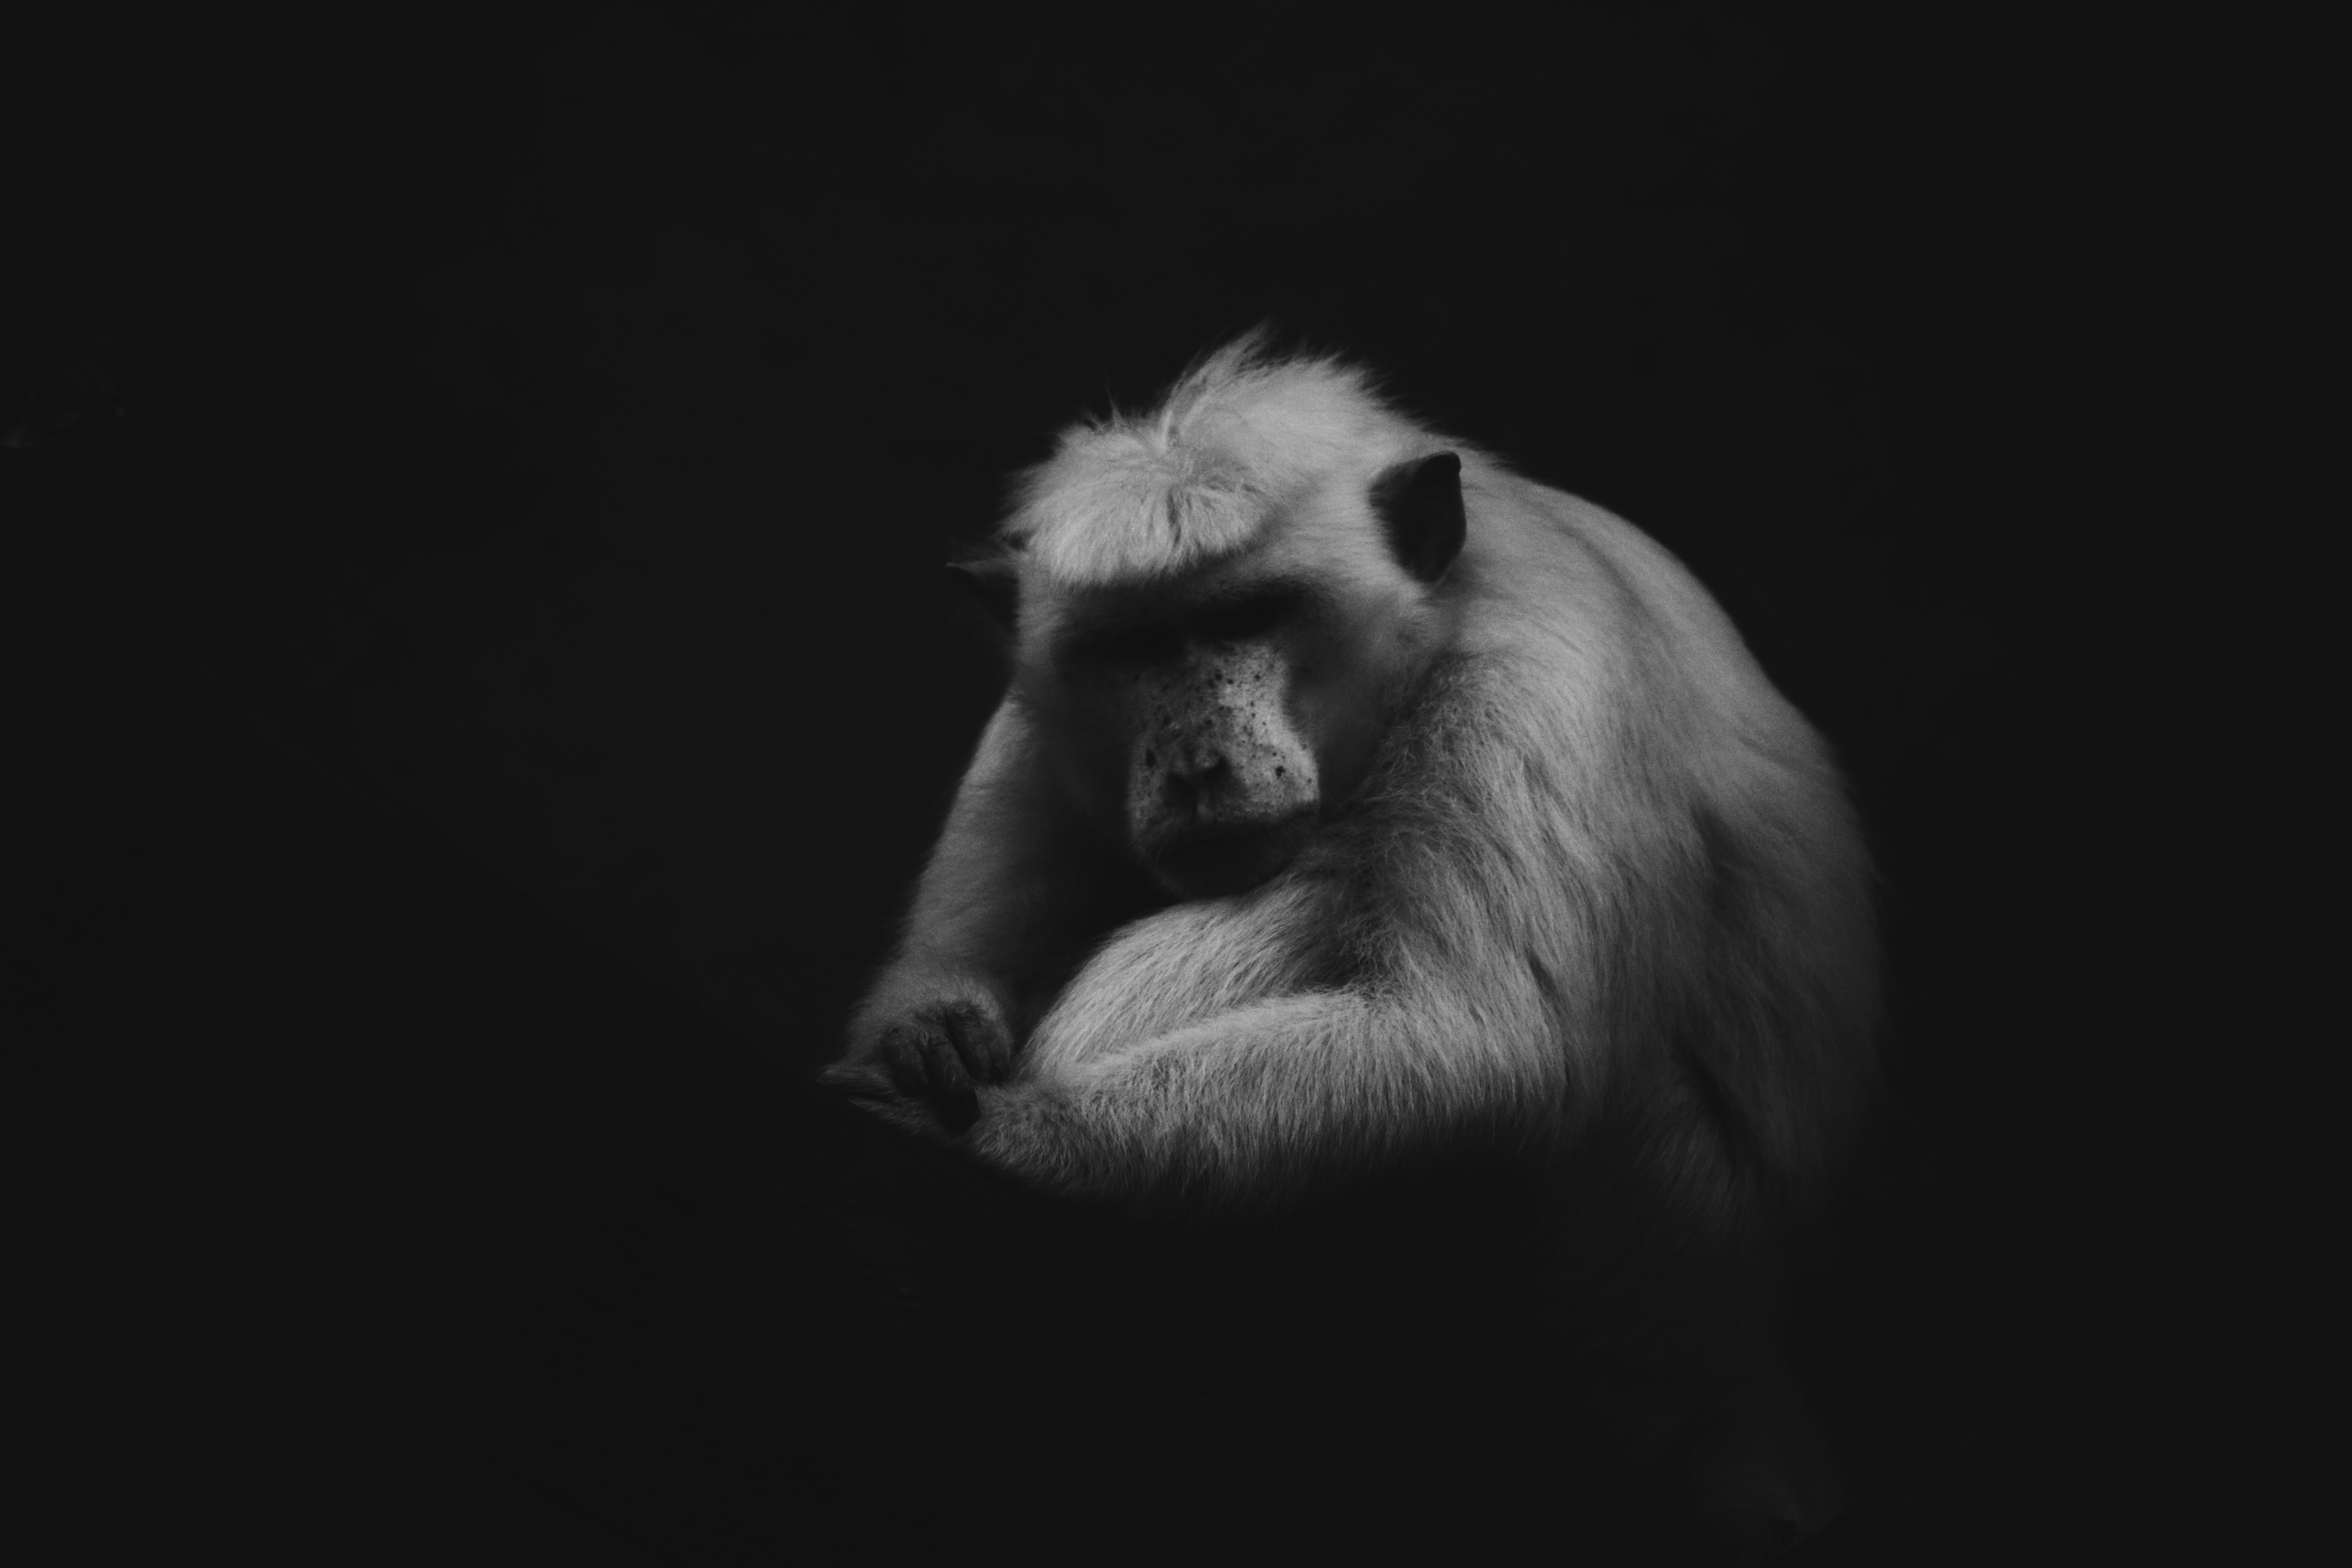 grayscale photo of baboon